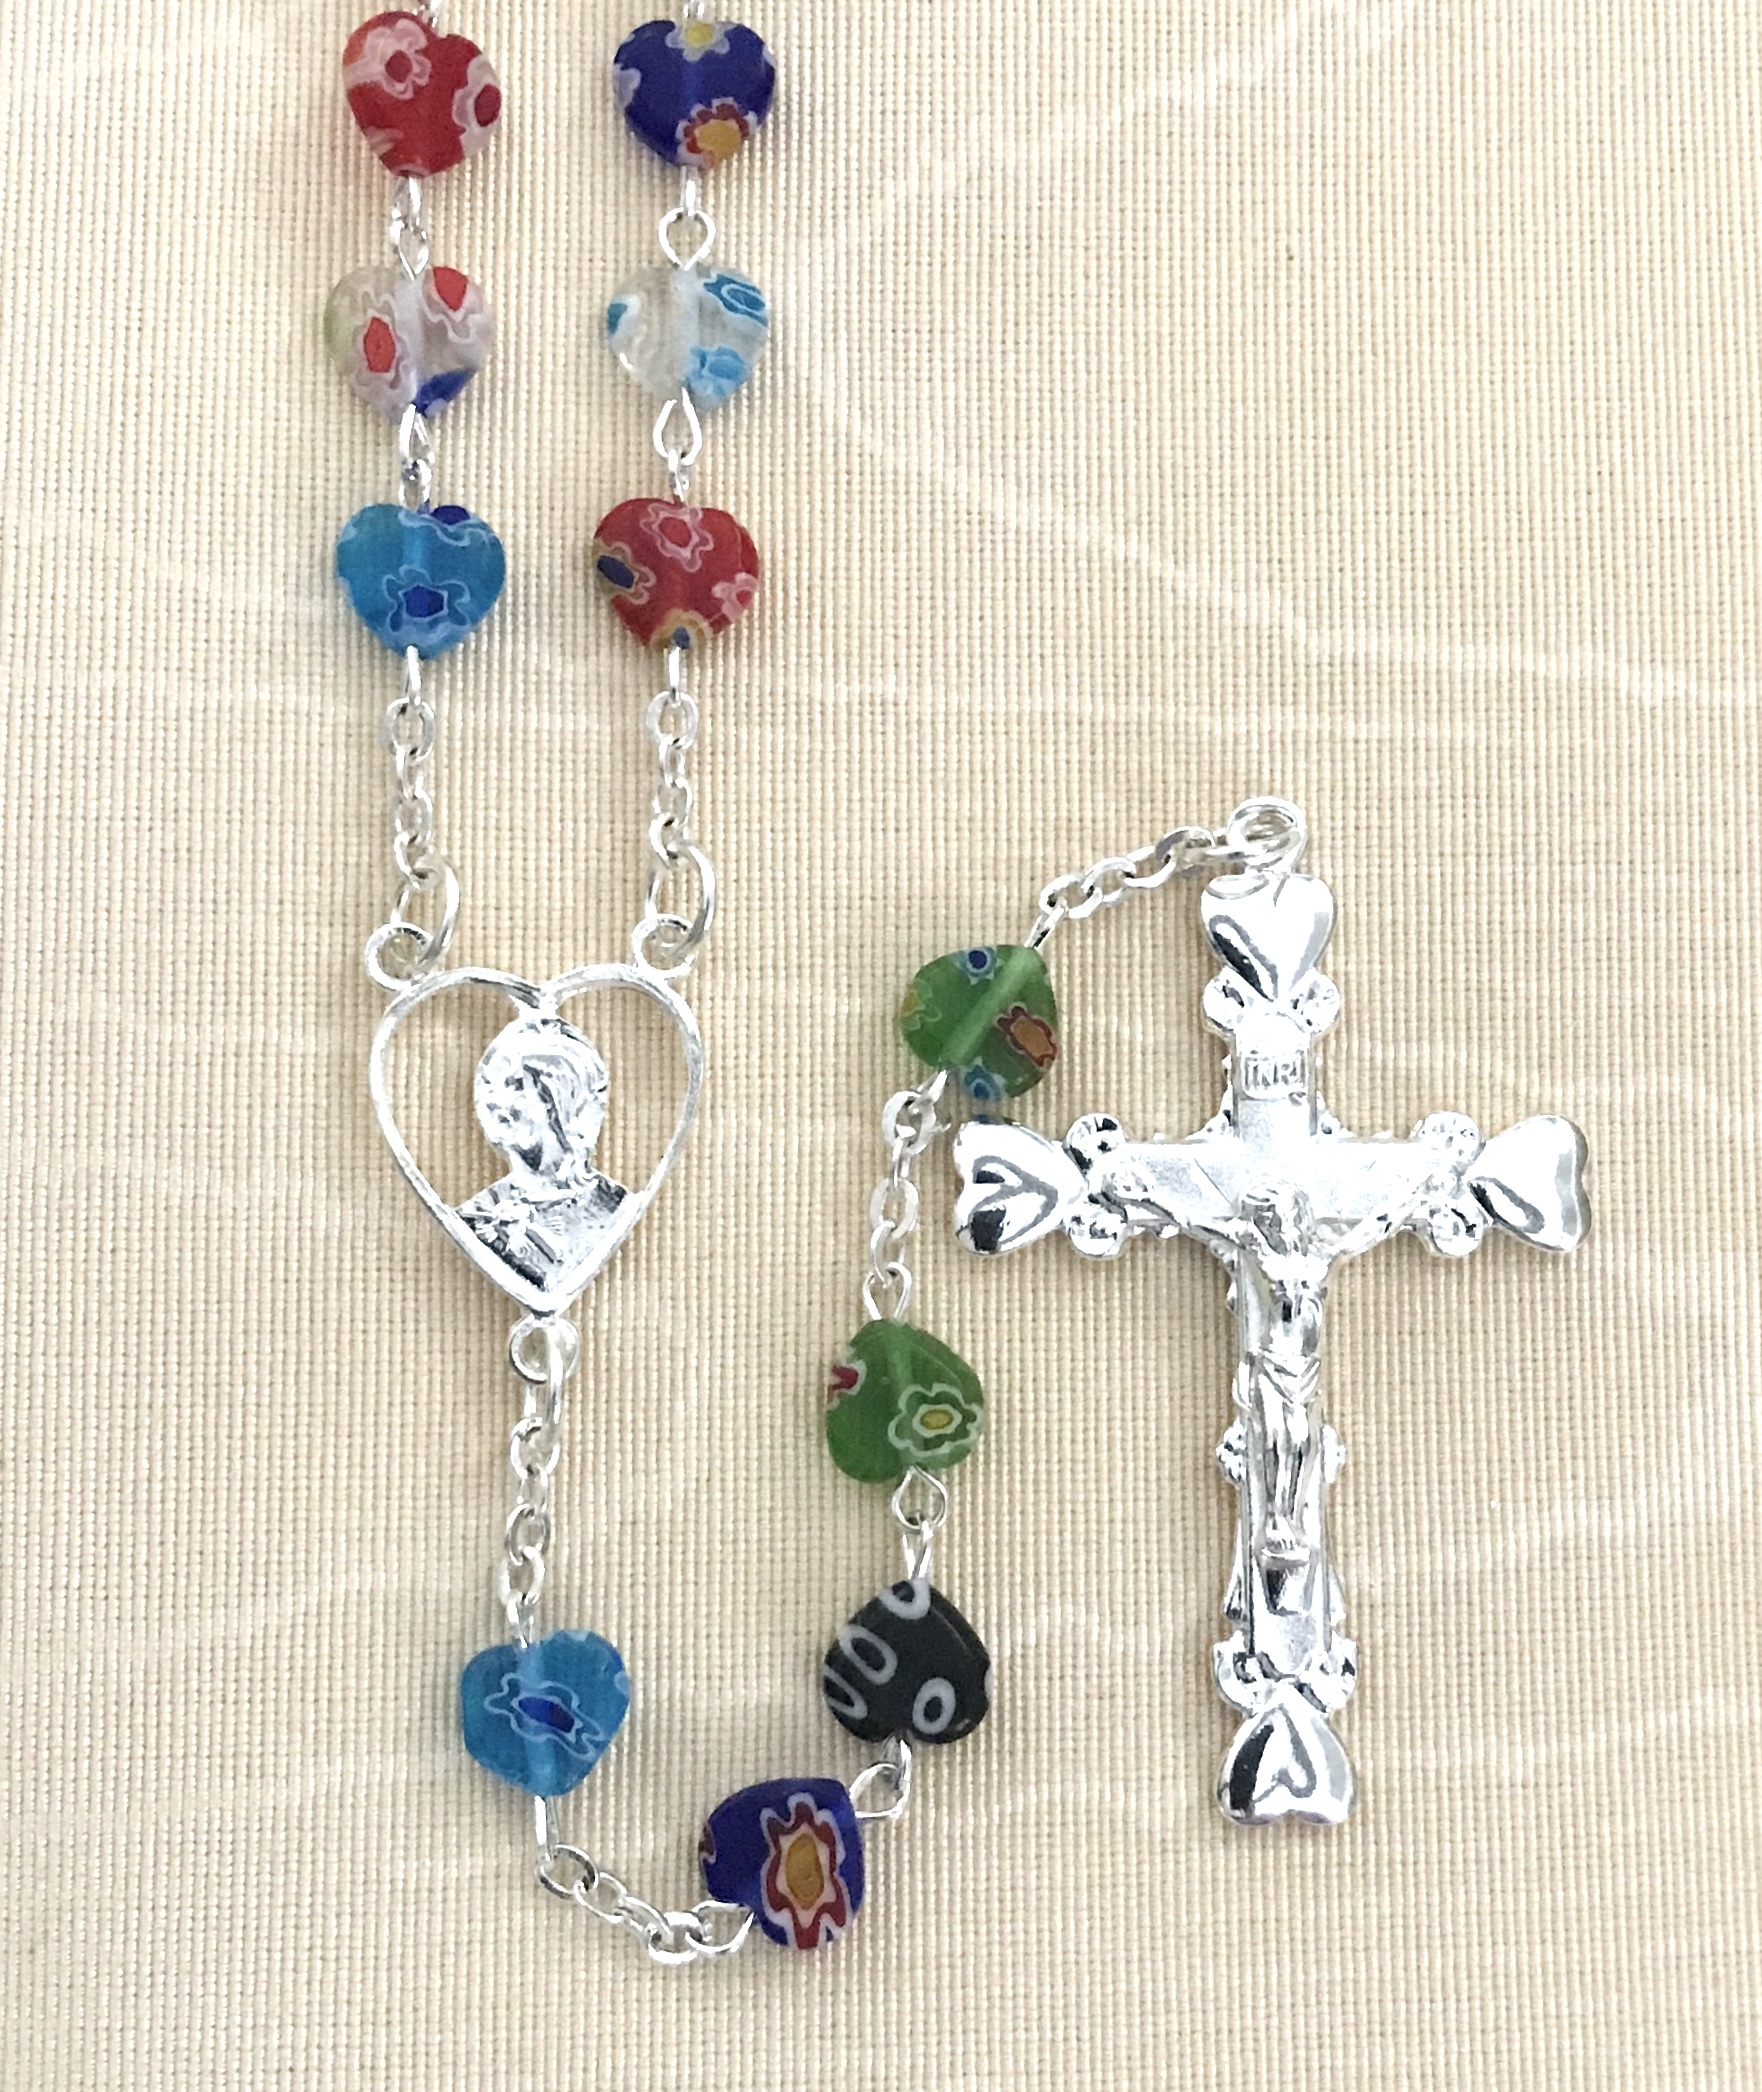 8x8mm MULTI COLORED HEART SHAPED GLASS ROSARY WITH STERLING SILVER PLATED CRUCIFIX AND CENTER GIFT BOXED